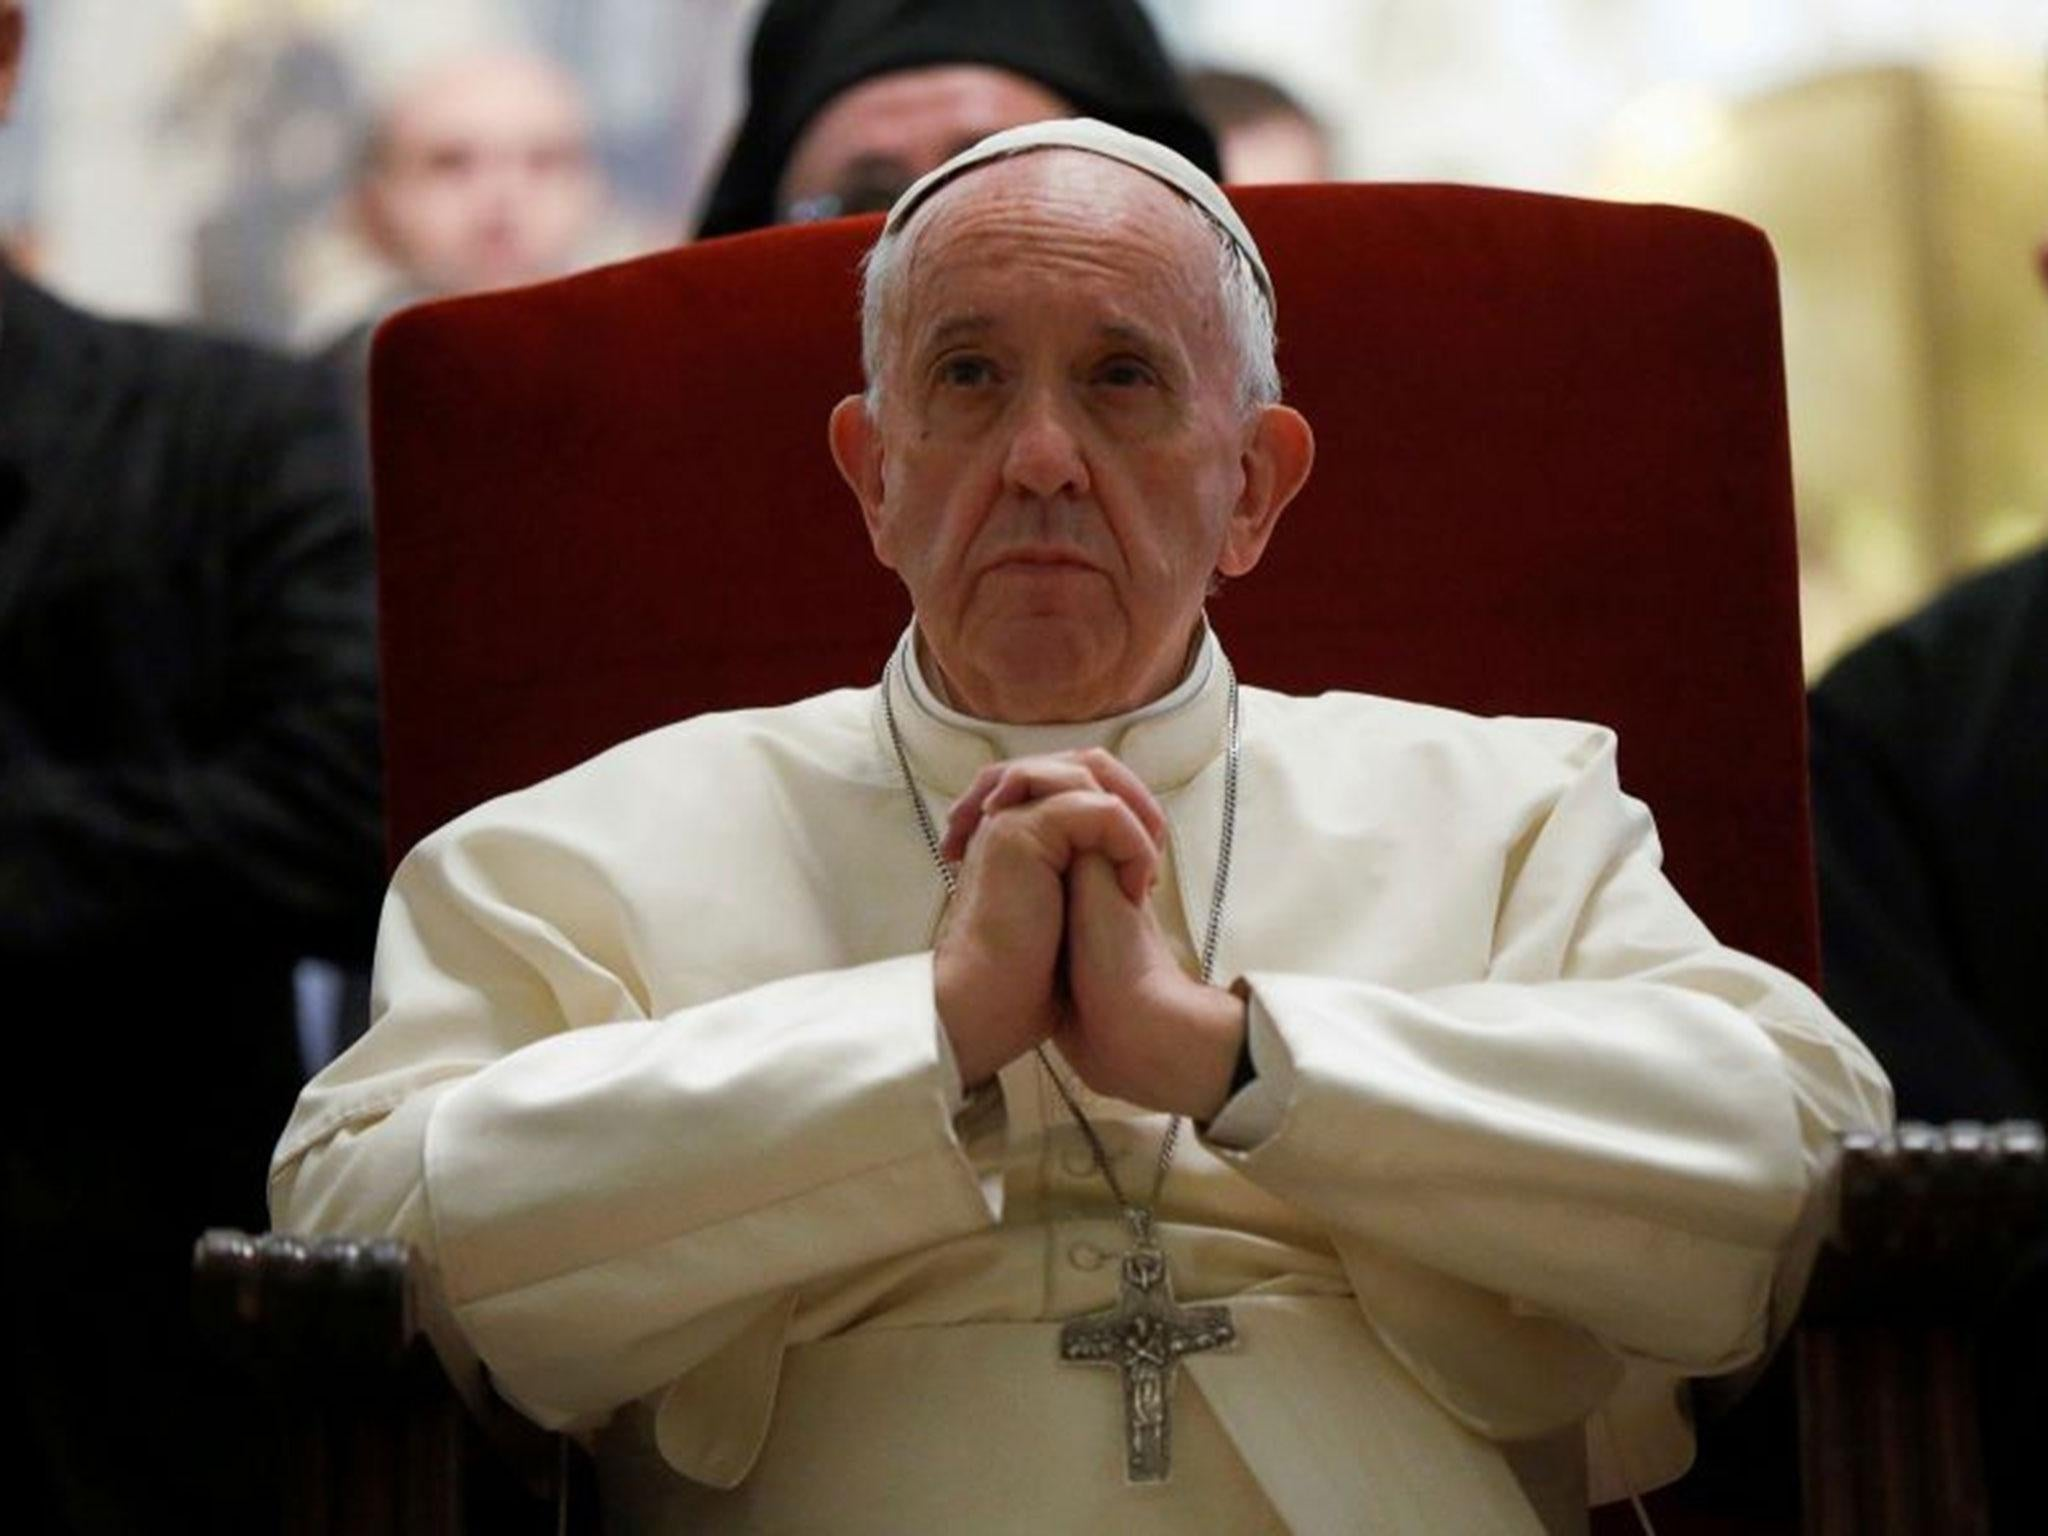 Pope Francis says gender theory is part of a 'global war' on marriage and family